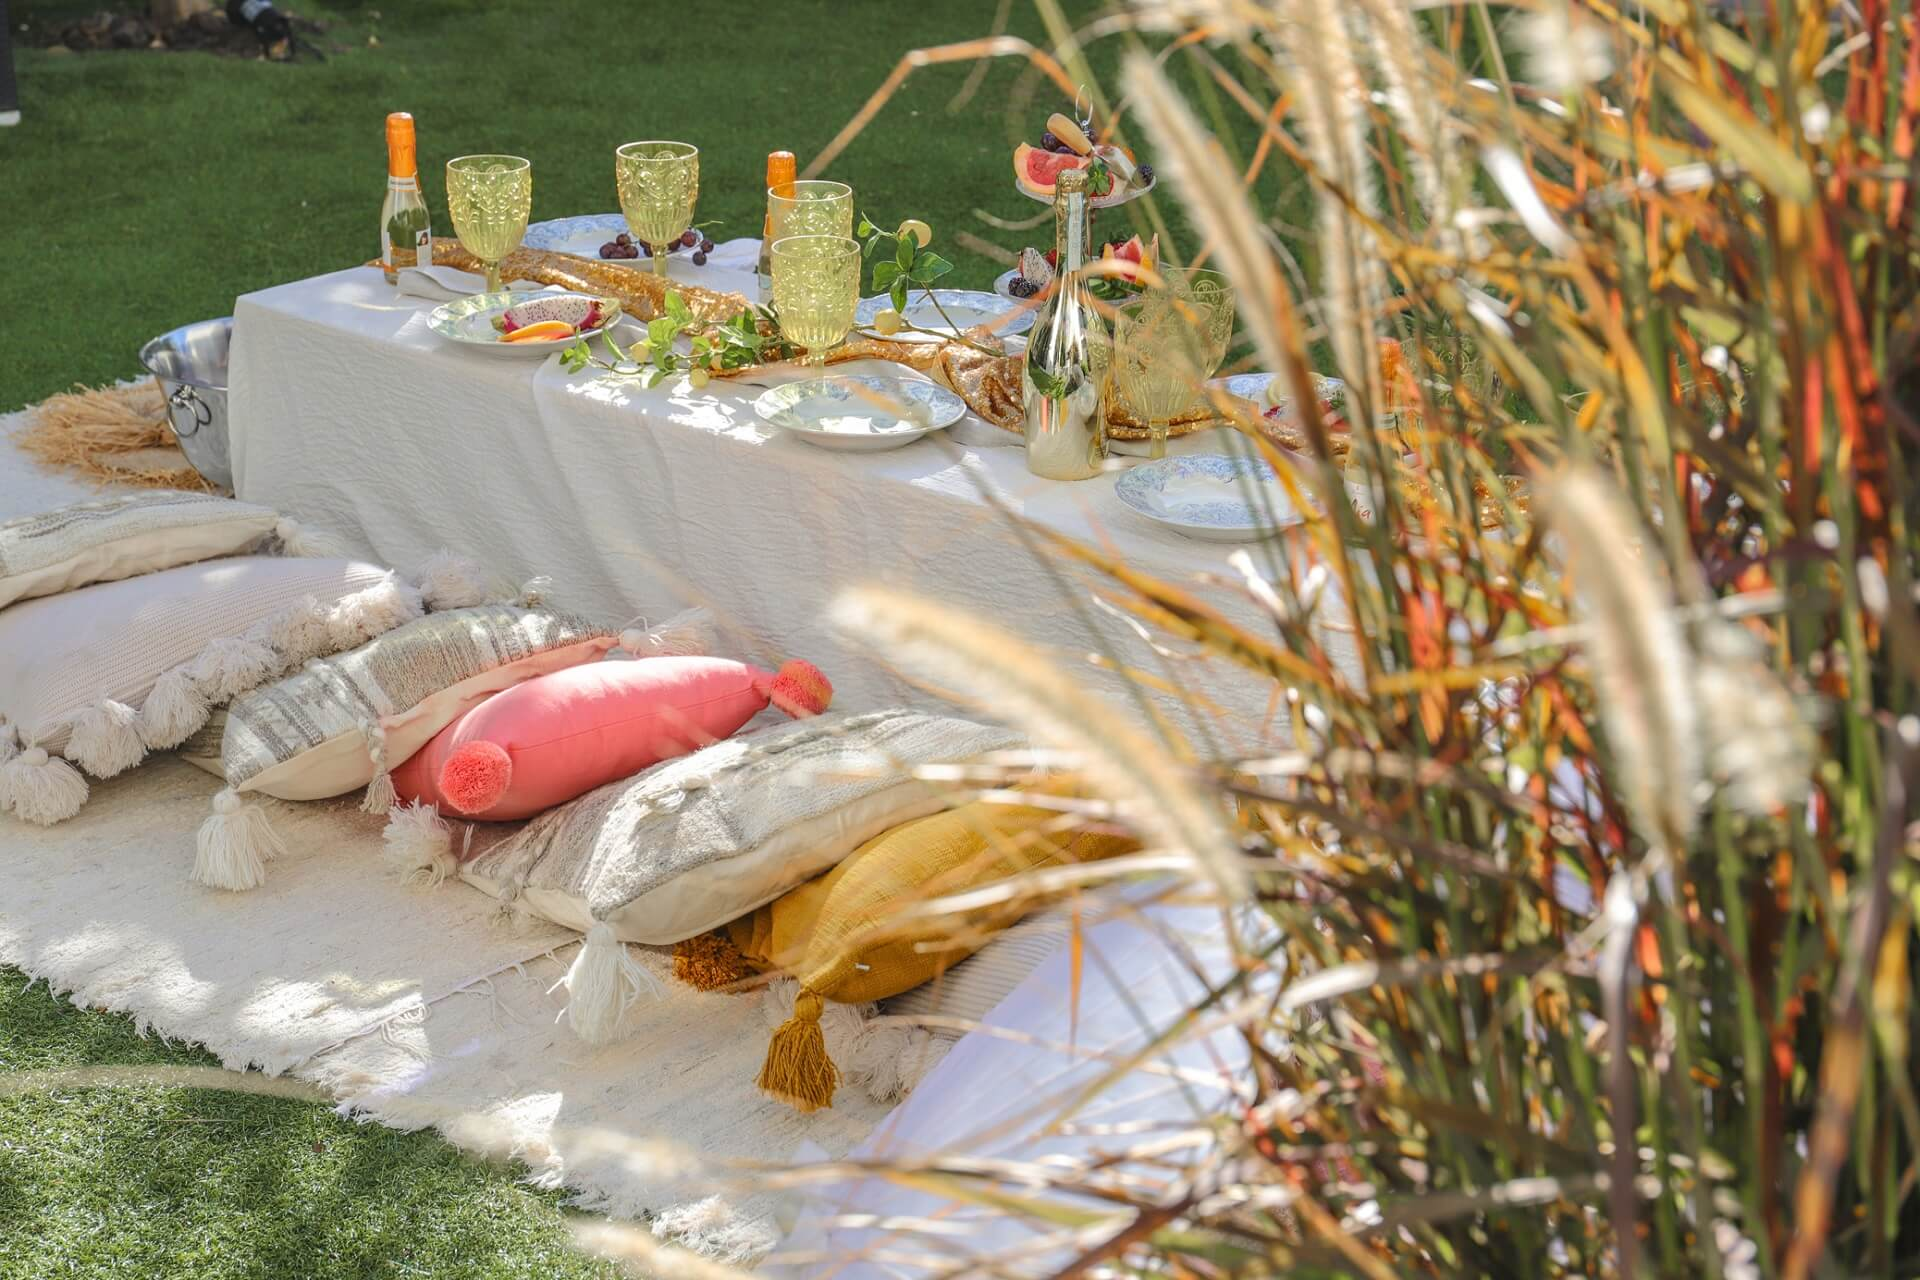 What are the best tips for a great and zero-waste picnic?